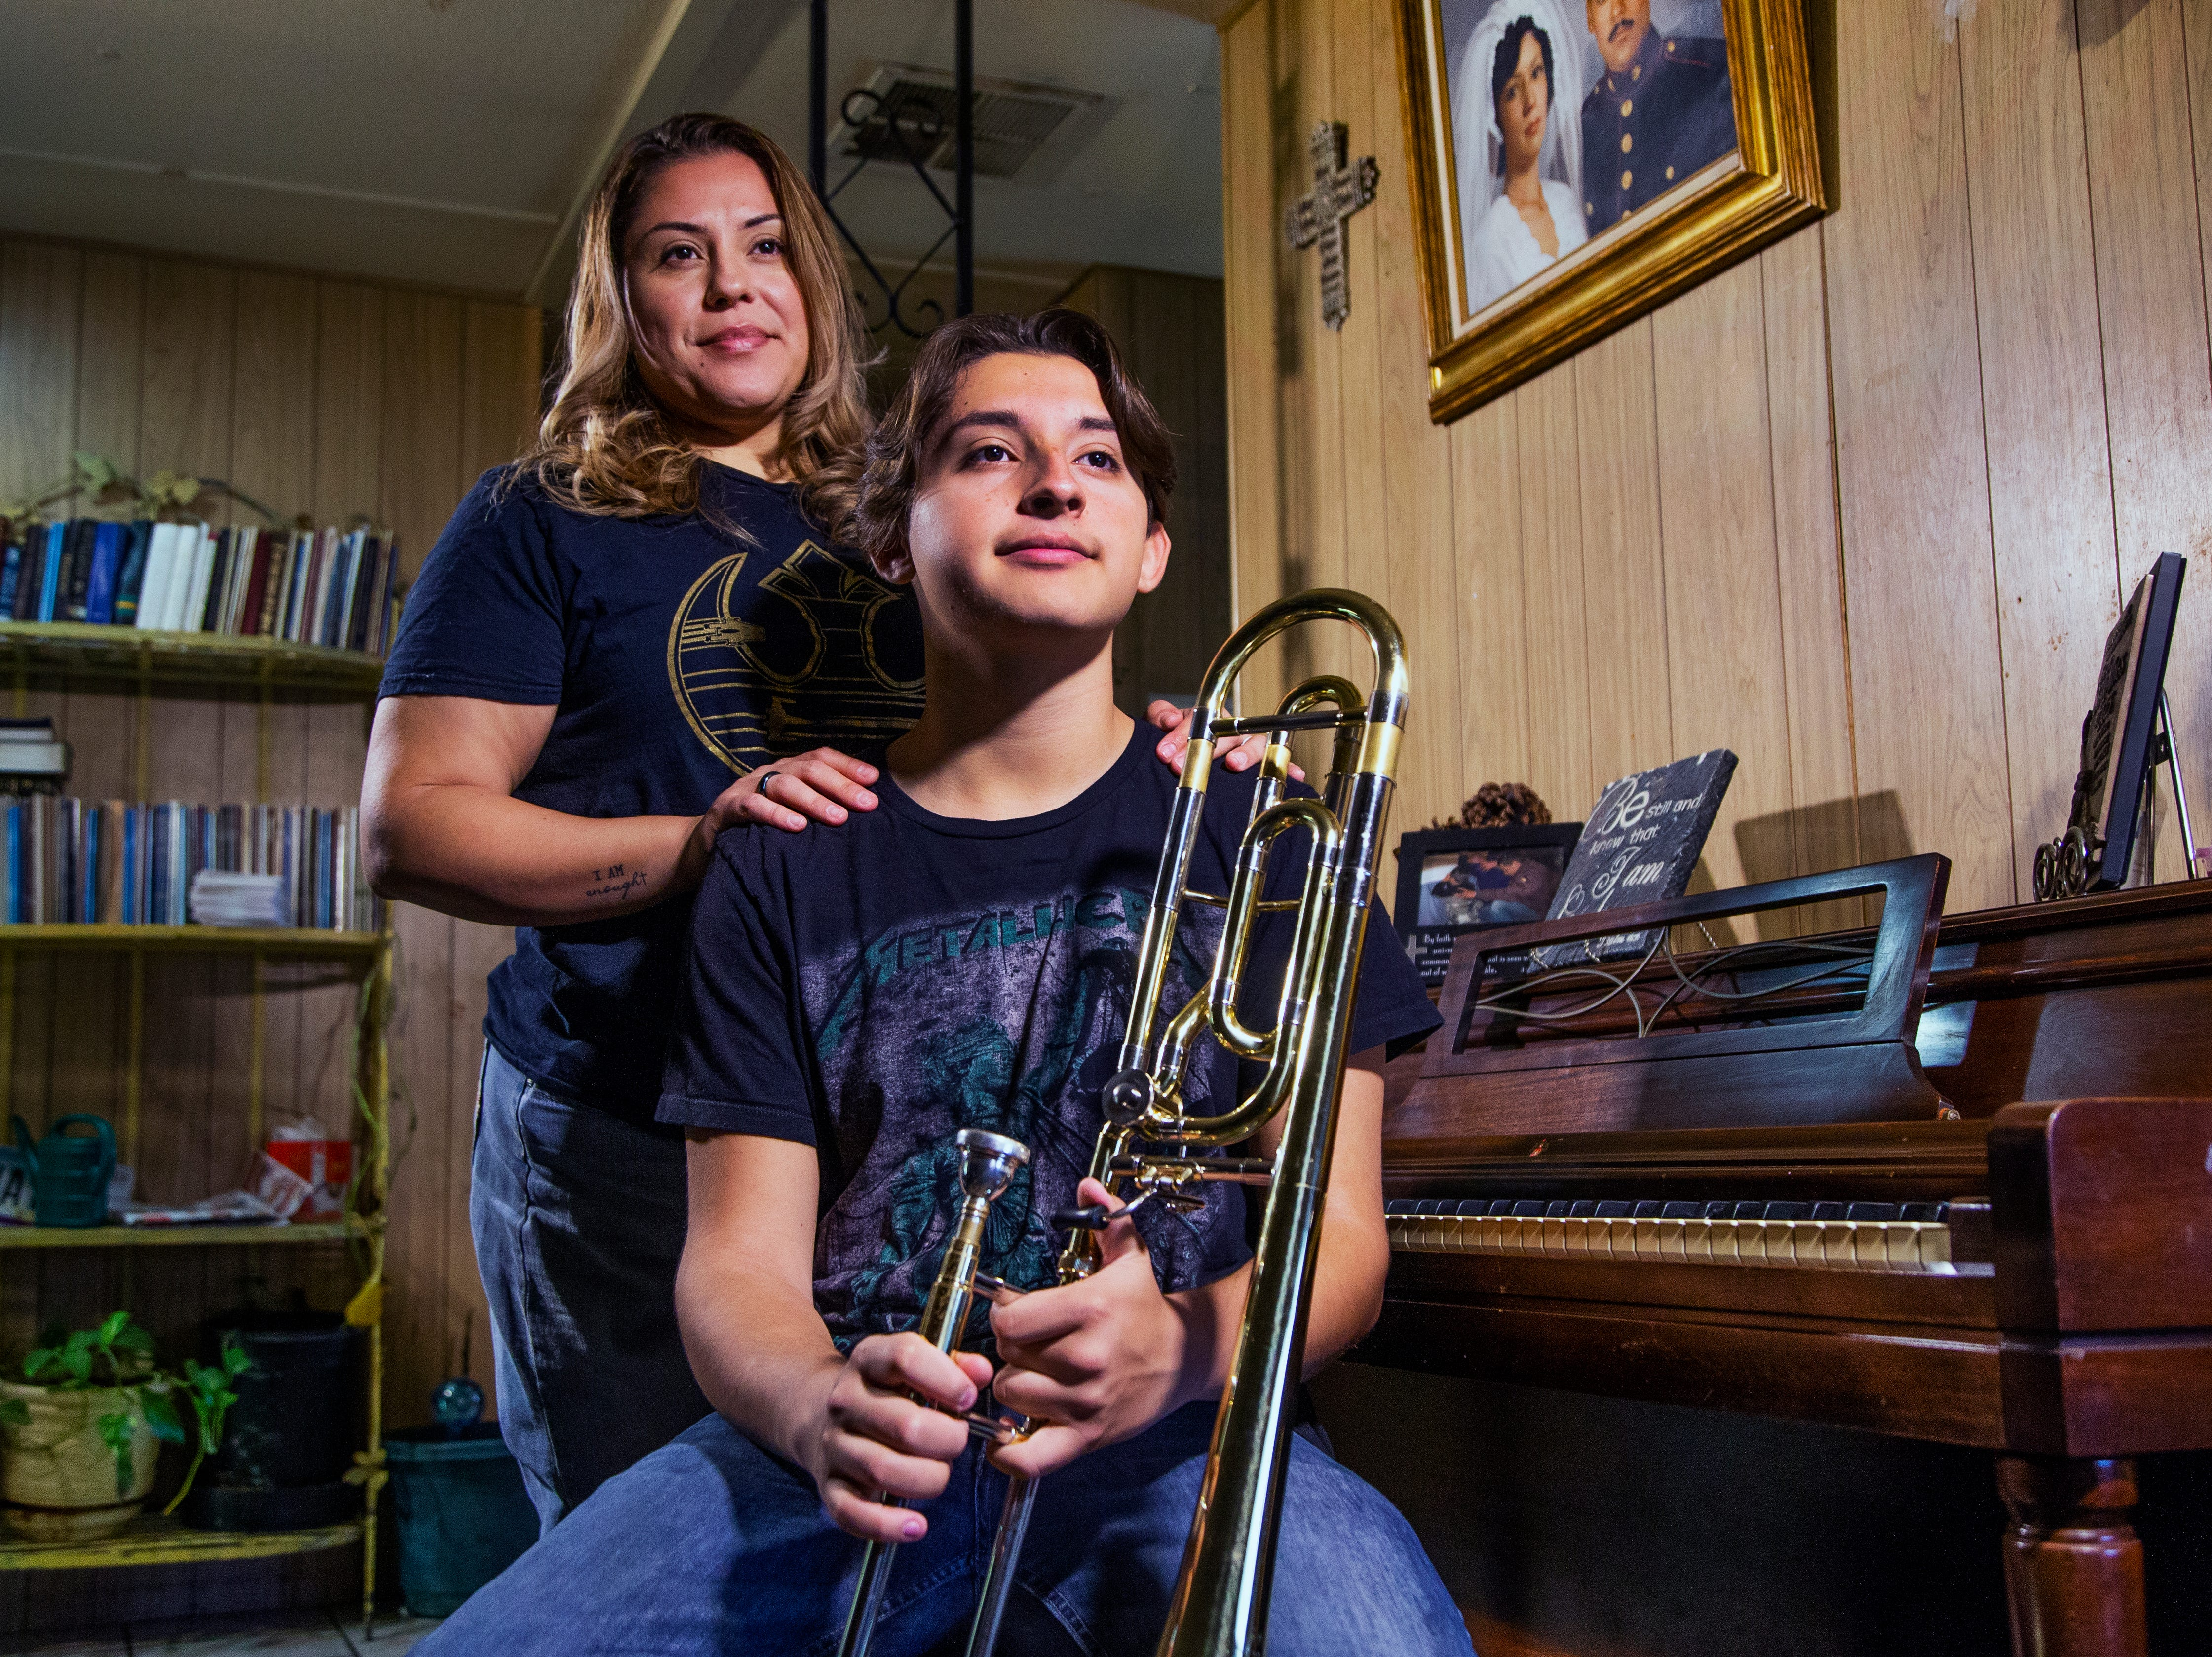 Samuel Osornio, 15, a student at Mesa High School, poses with his trombone and his mom, Dennise Osornio, at home, Feb. 22, 2019. Osornio was suspended from school for throwing a punch at a classmate, who, according to Osornio, was threatening him.